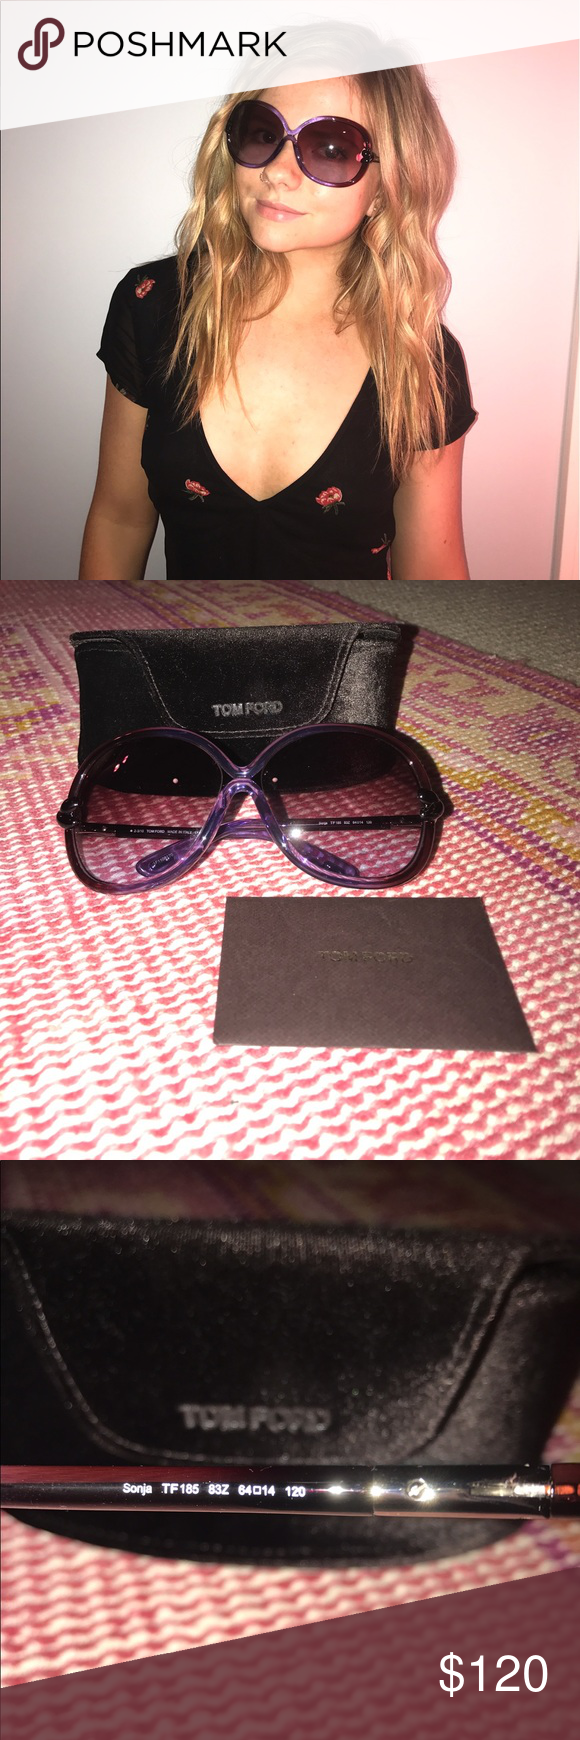 f56c25b62e Tom Ford sunglasses Purple Tom Ford sunglasses with knot at temples